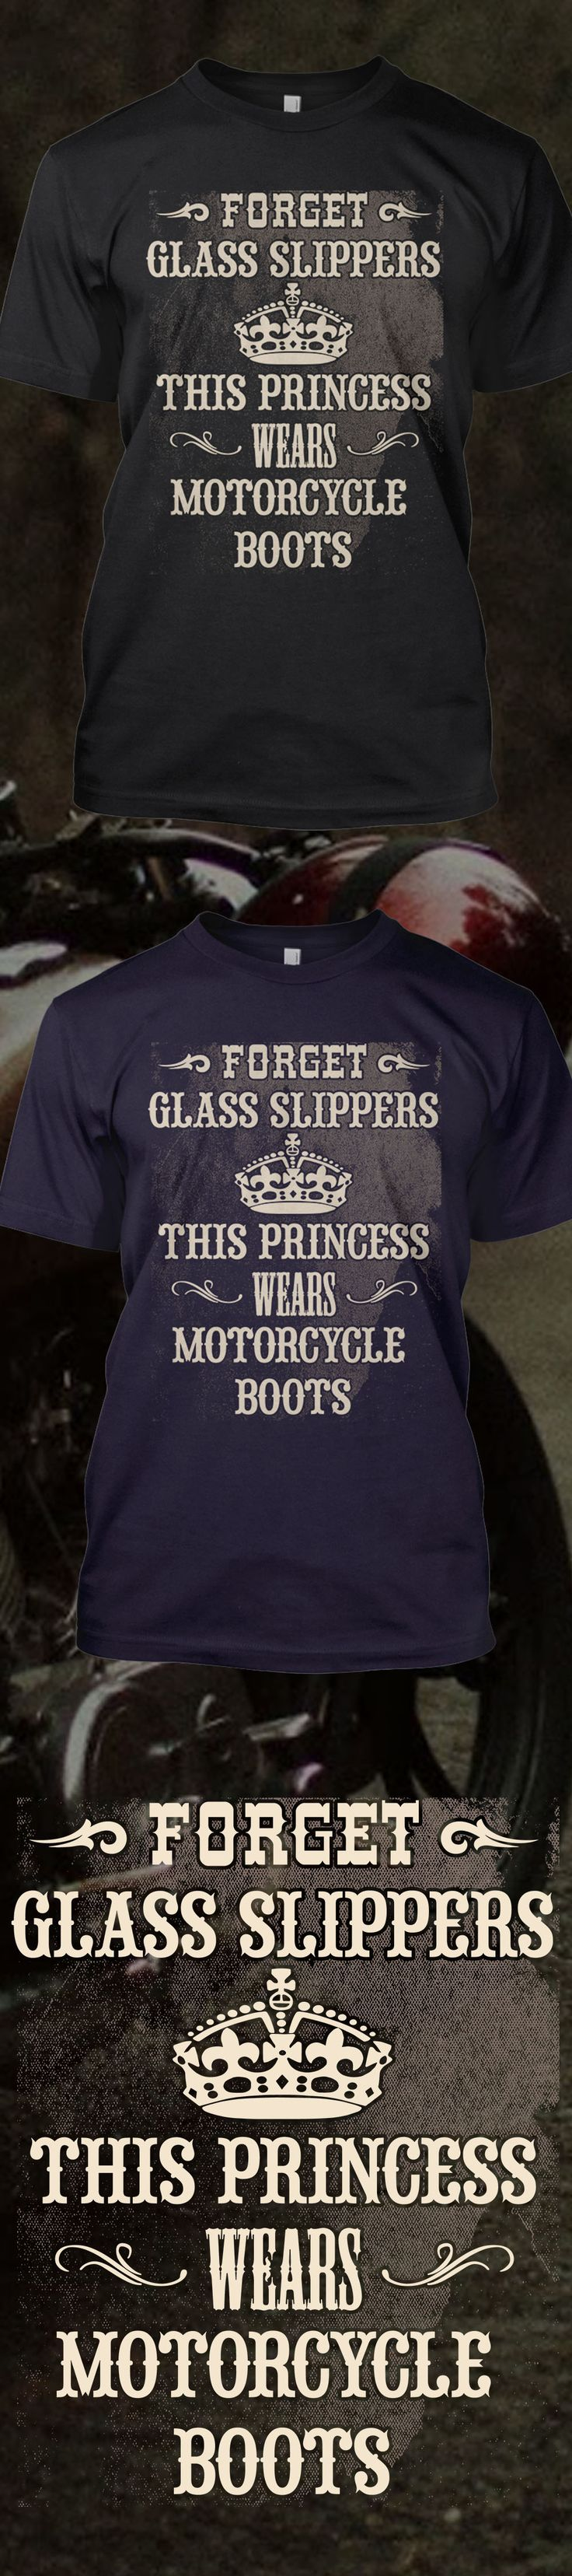 Are you wearing motorcycle boots?! Check out this awesome This Princess Wears Motorcycle Boots t-shirt you will not find anywhere else. Not sold in stores and only 2 days left for free shipping! Grab yours or gift it to a friend, you will both love it